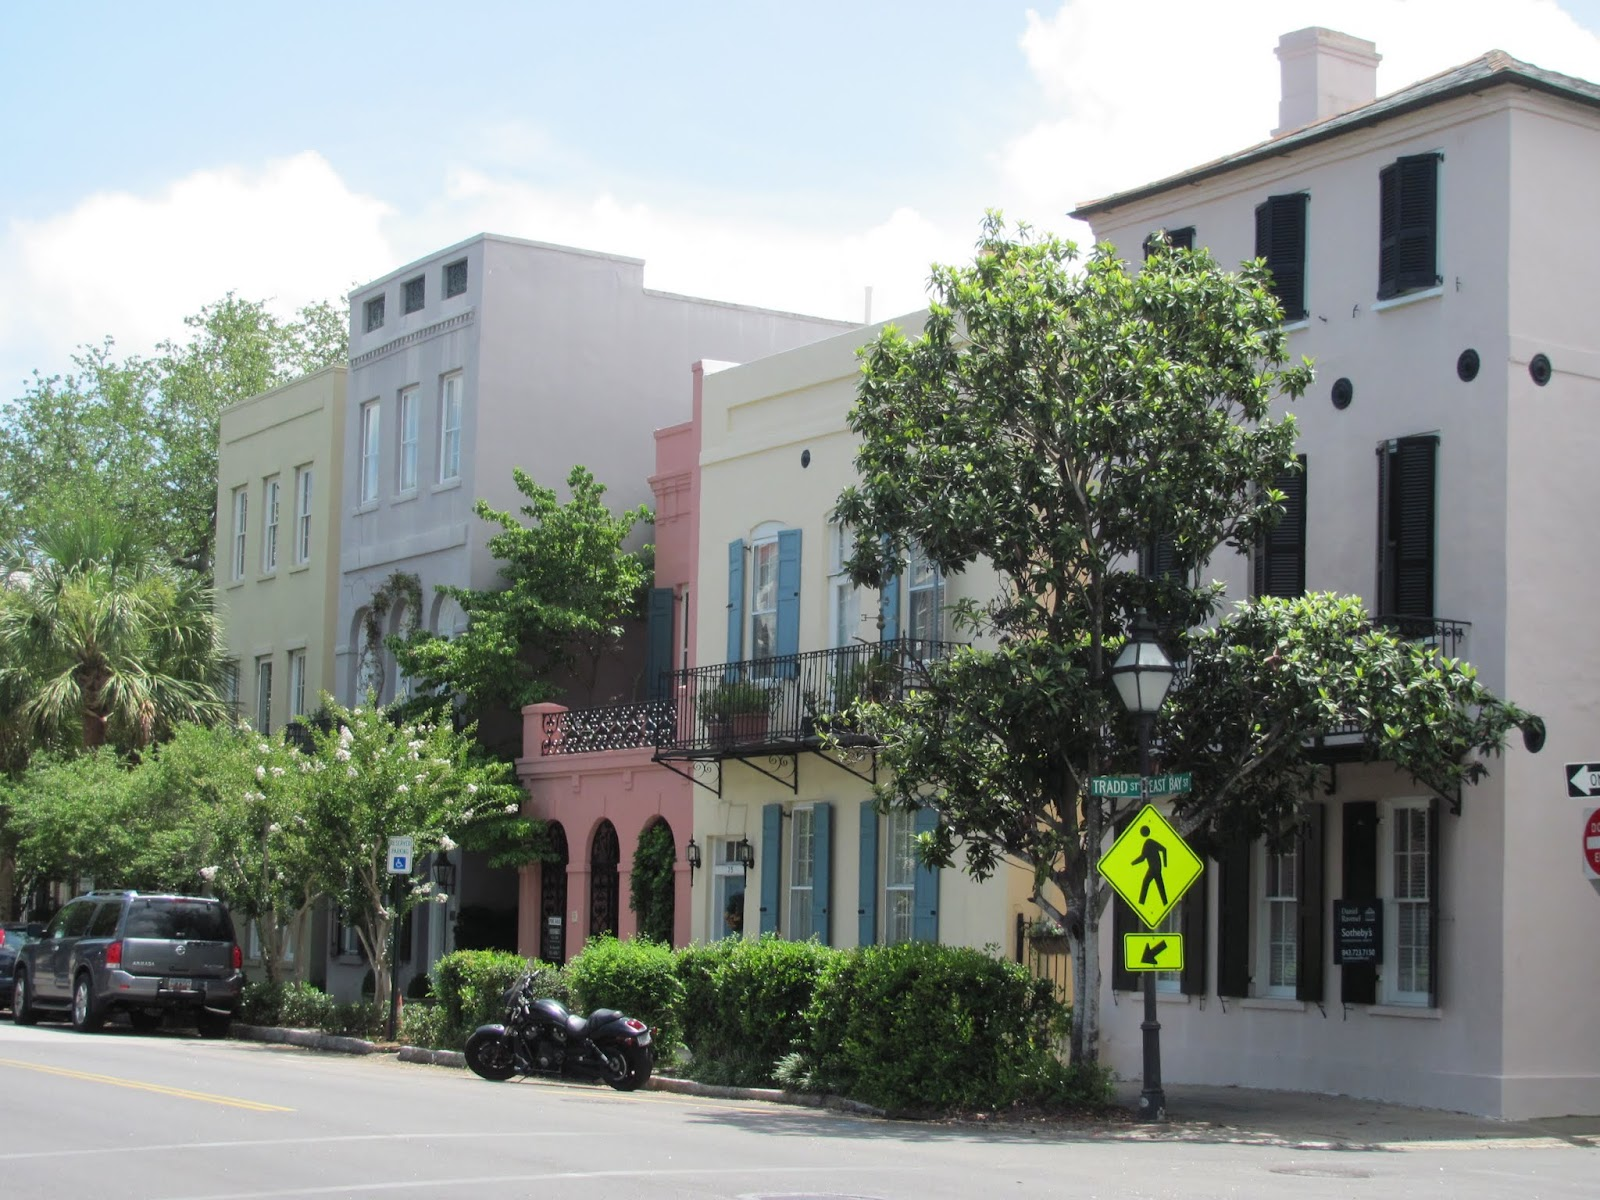 Pink, yellow, and tan homes on Rainbow Row in Charleston, SC